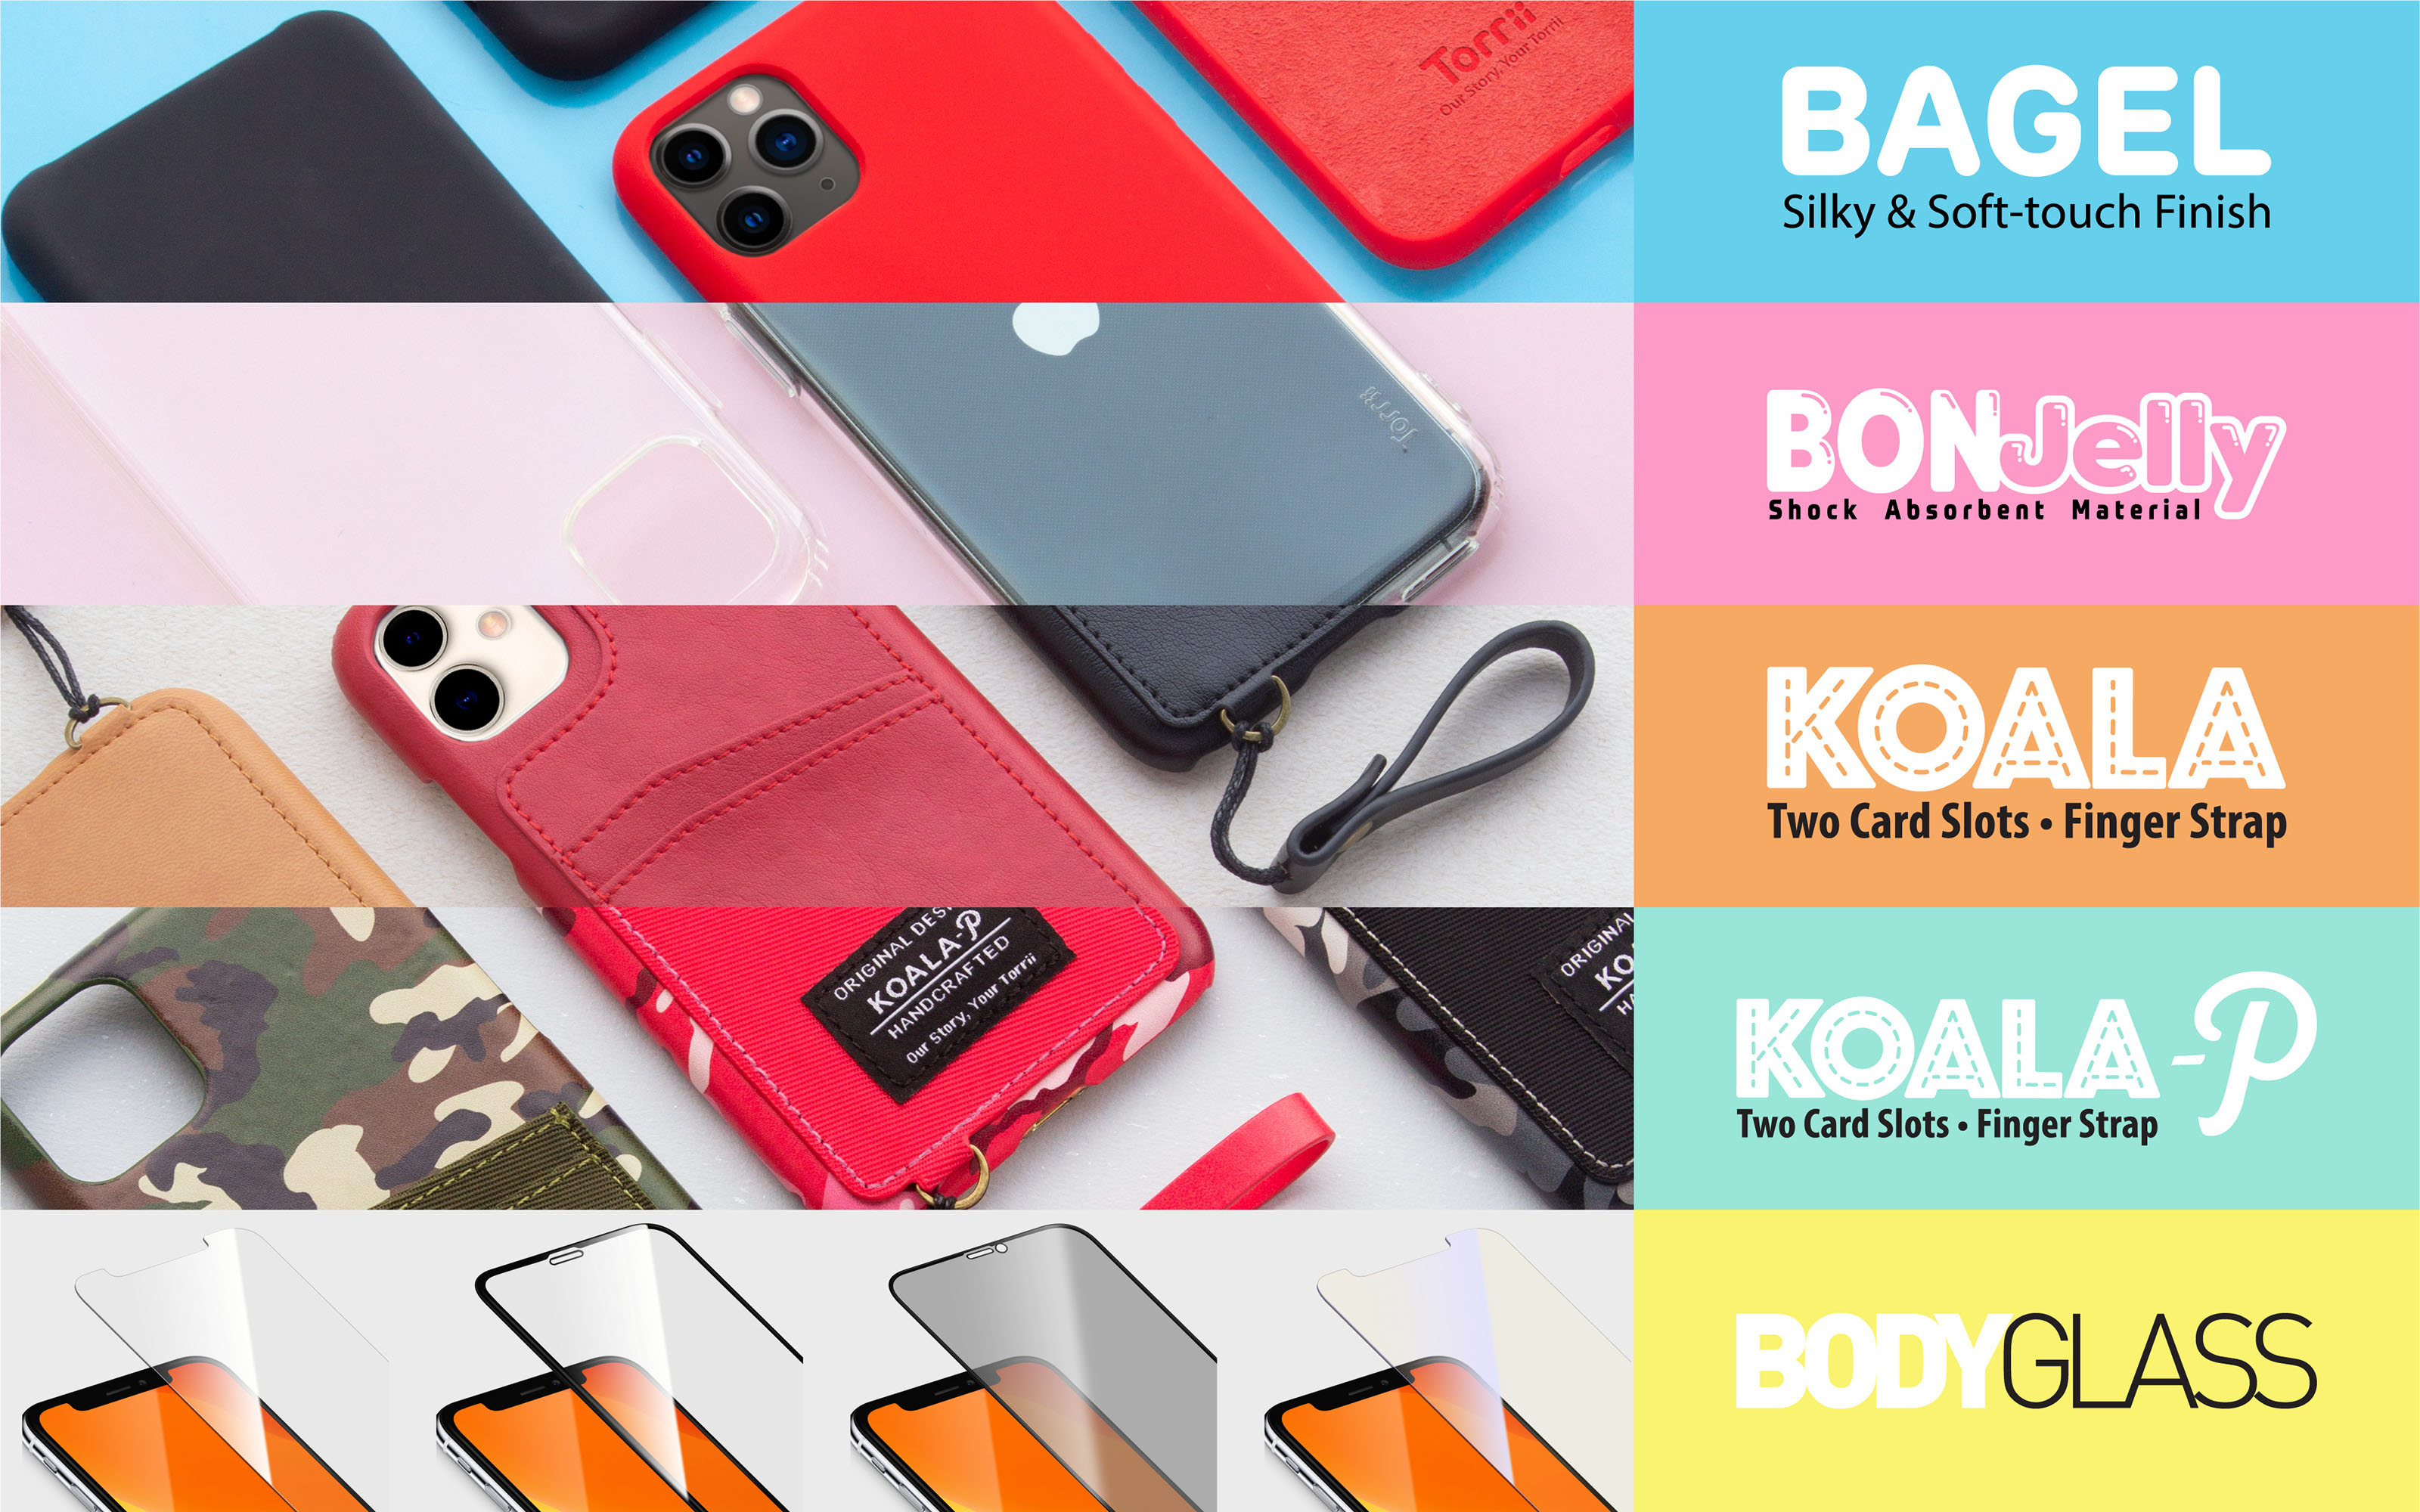 Torrii introduces new line of cases for iPhone 11, iPhone 11 Pro and iPhone 11 Pro Max.